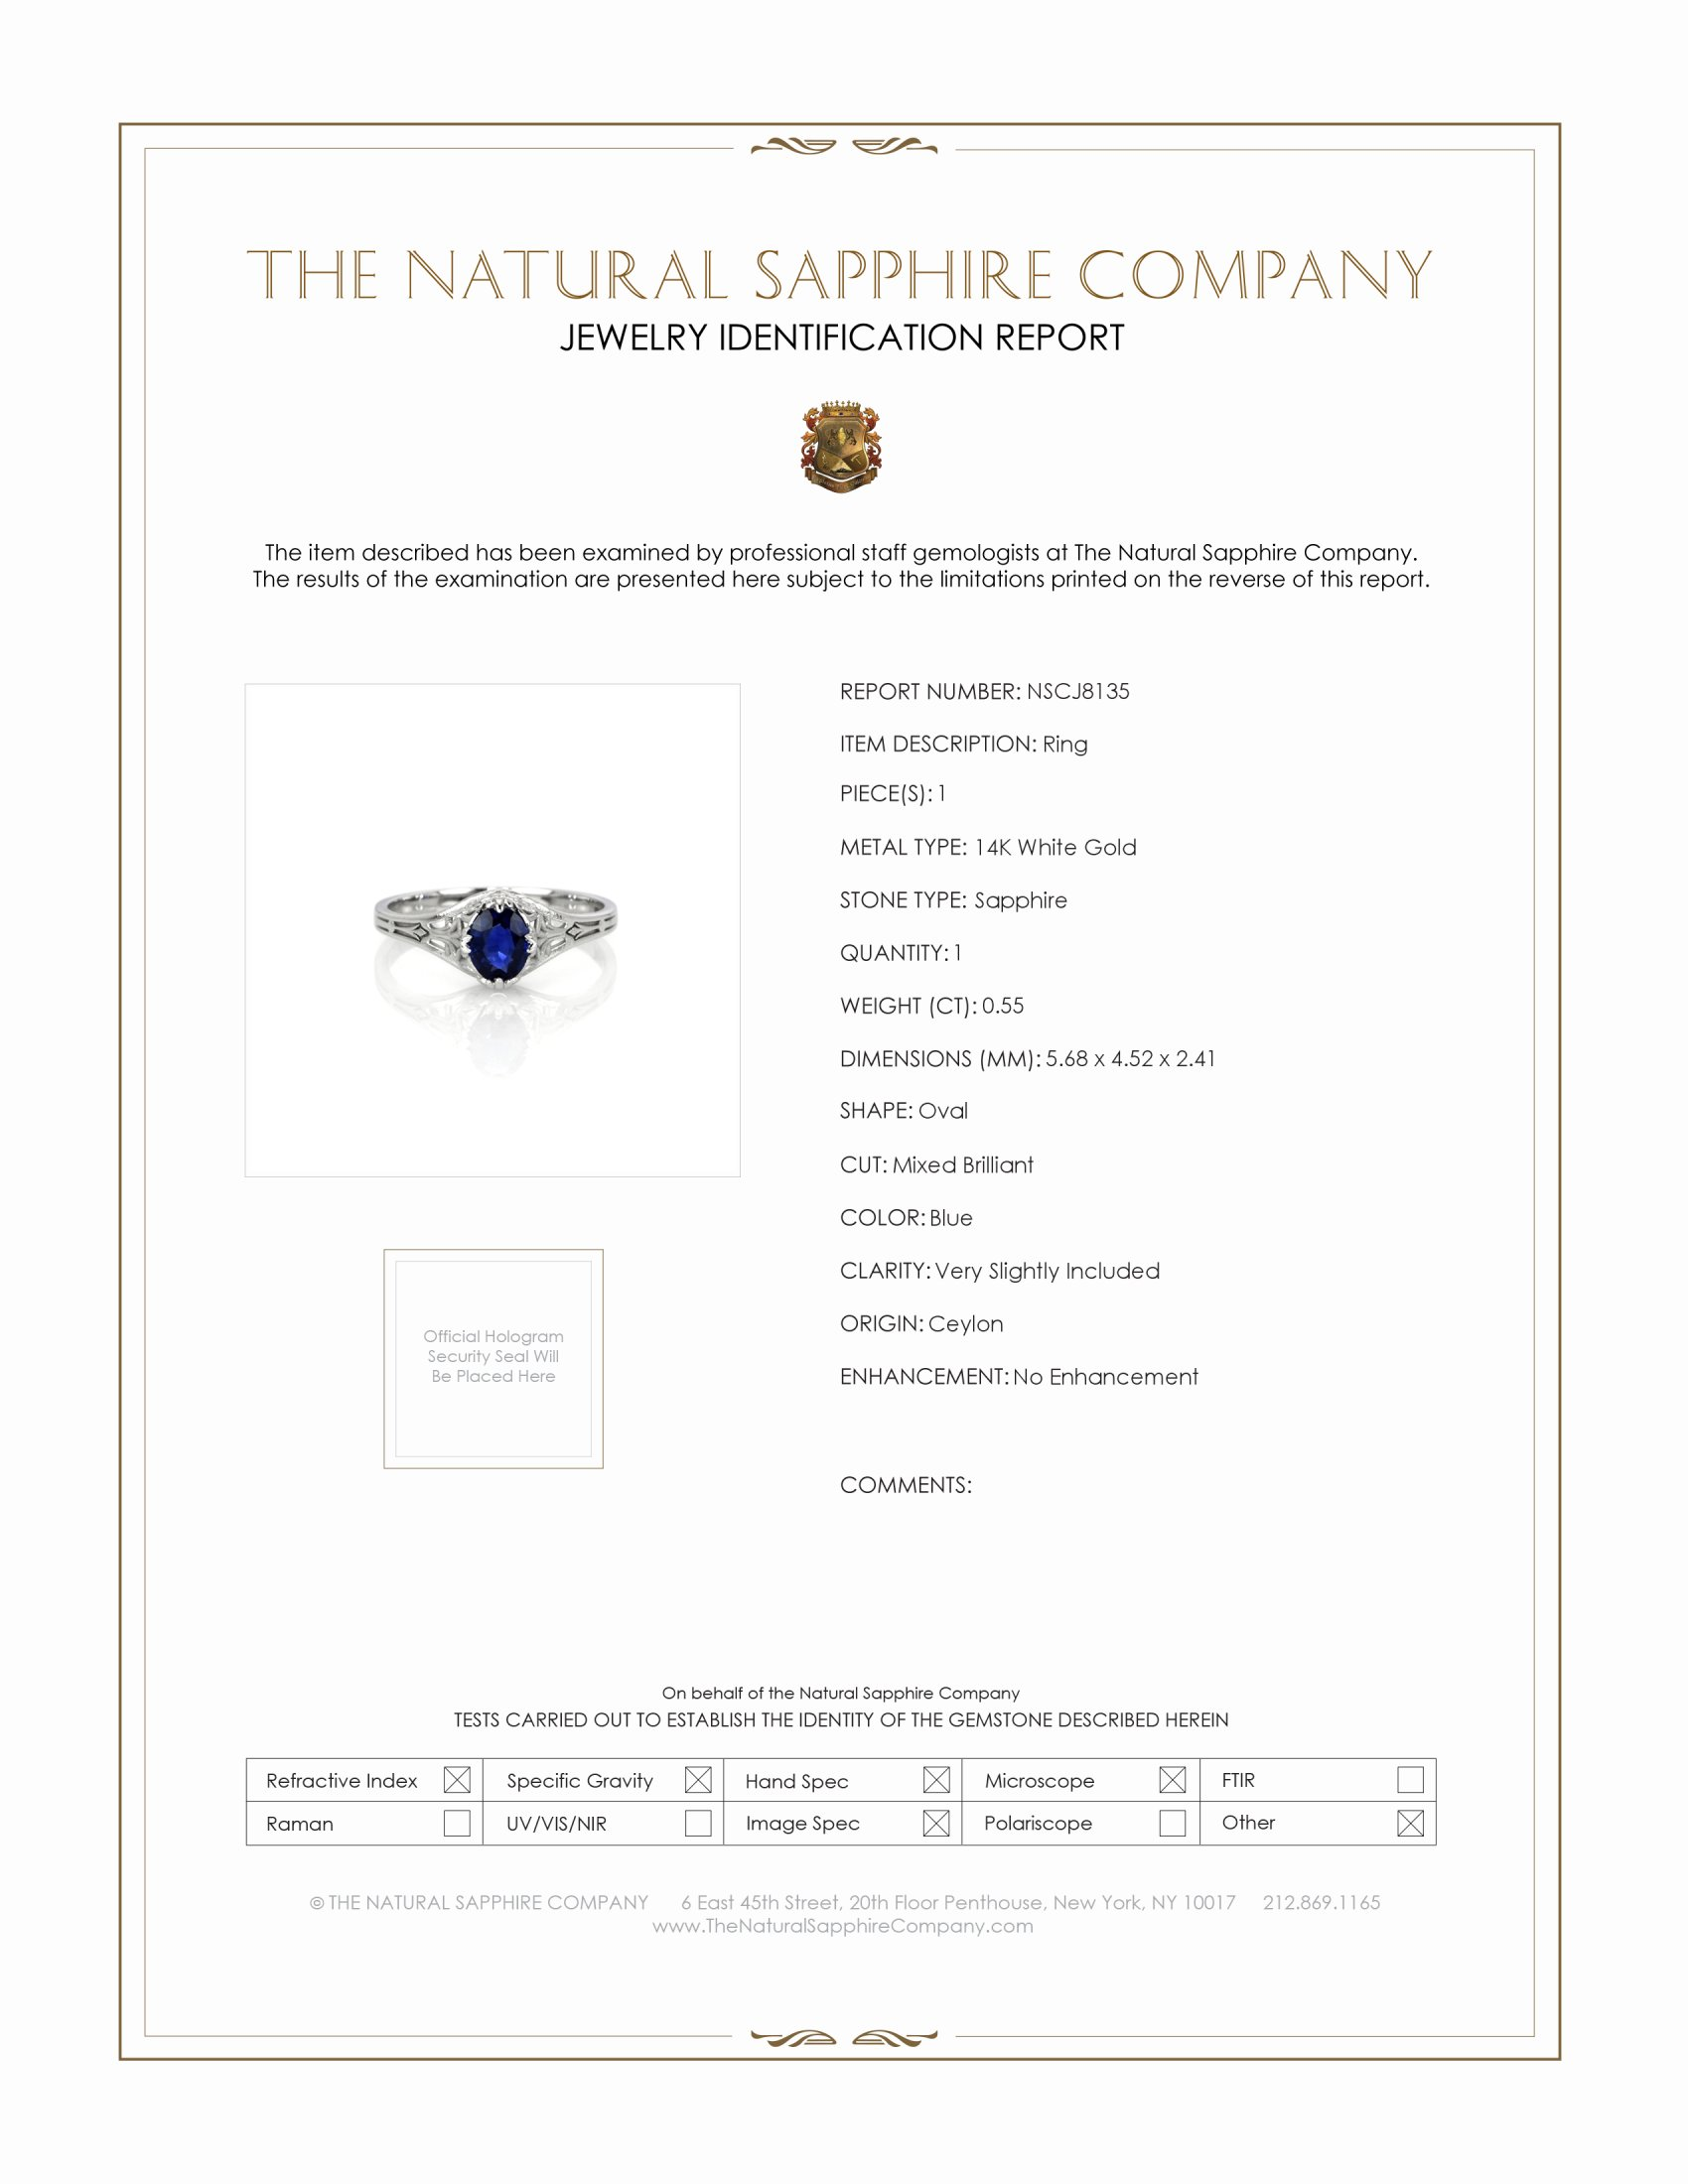 0.55ct Blue Sapphire Ring Certification